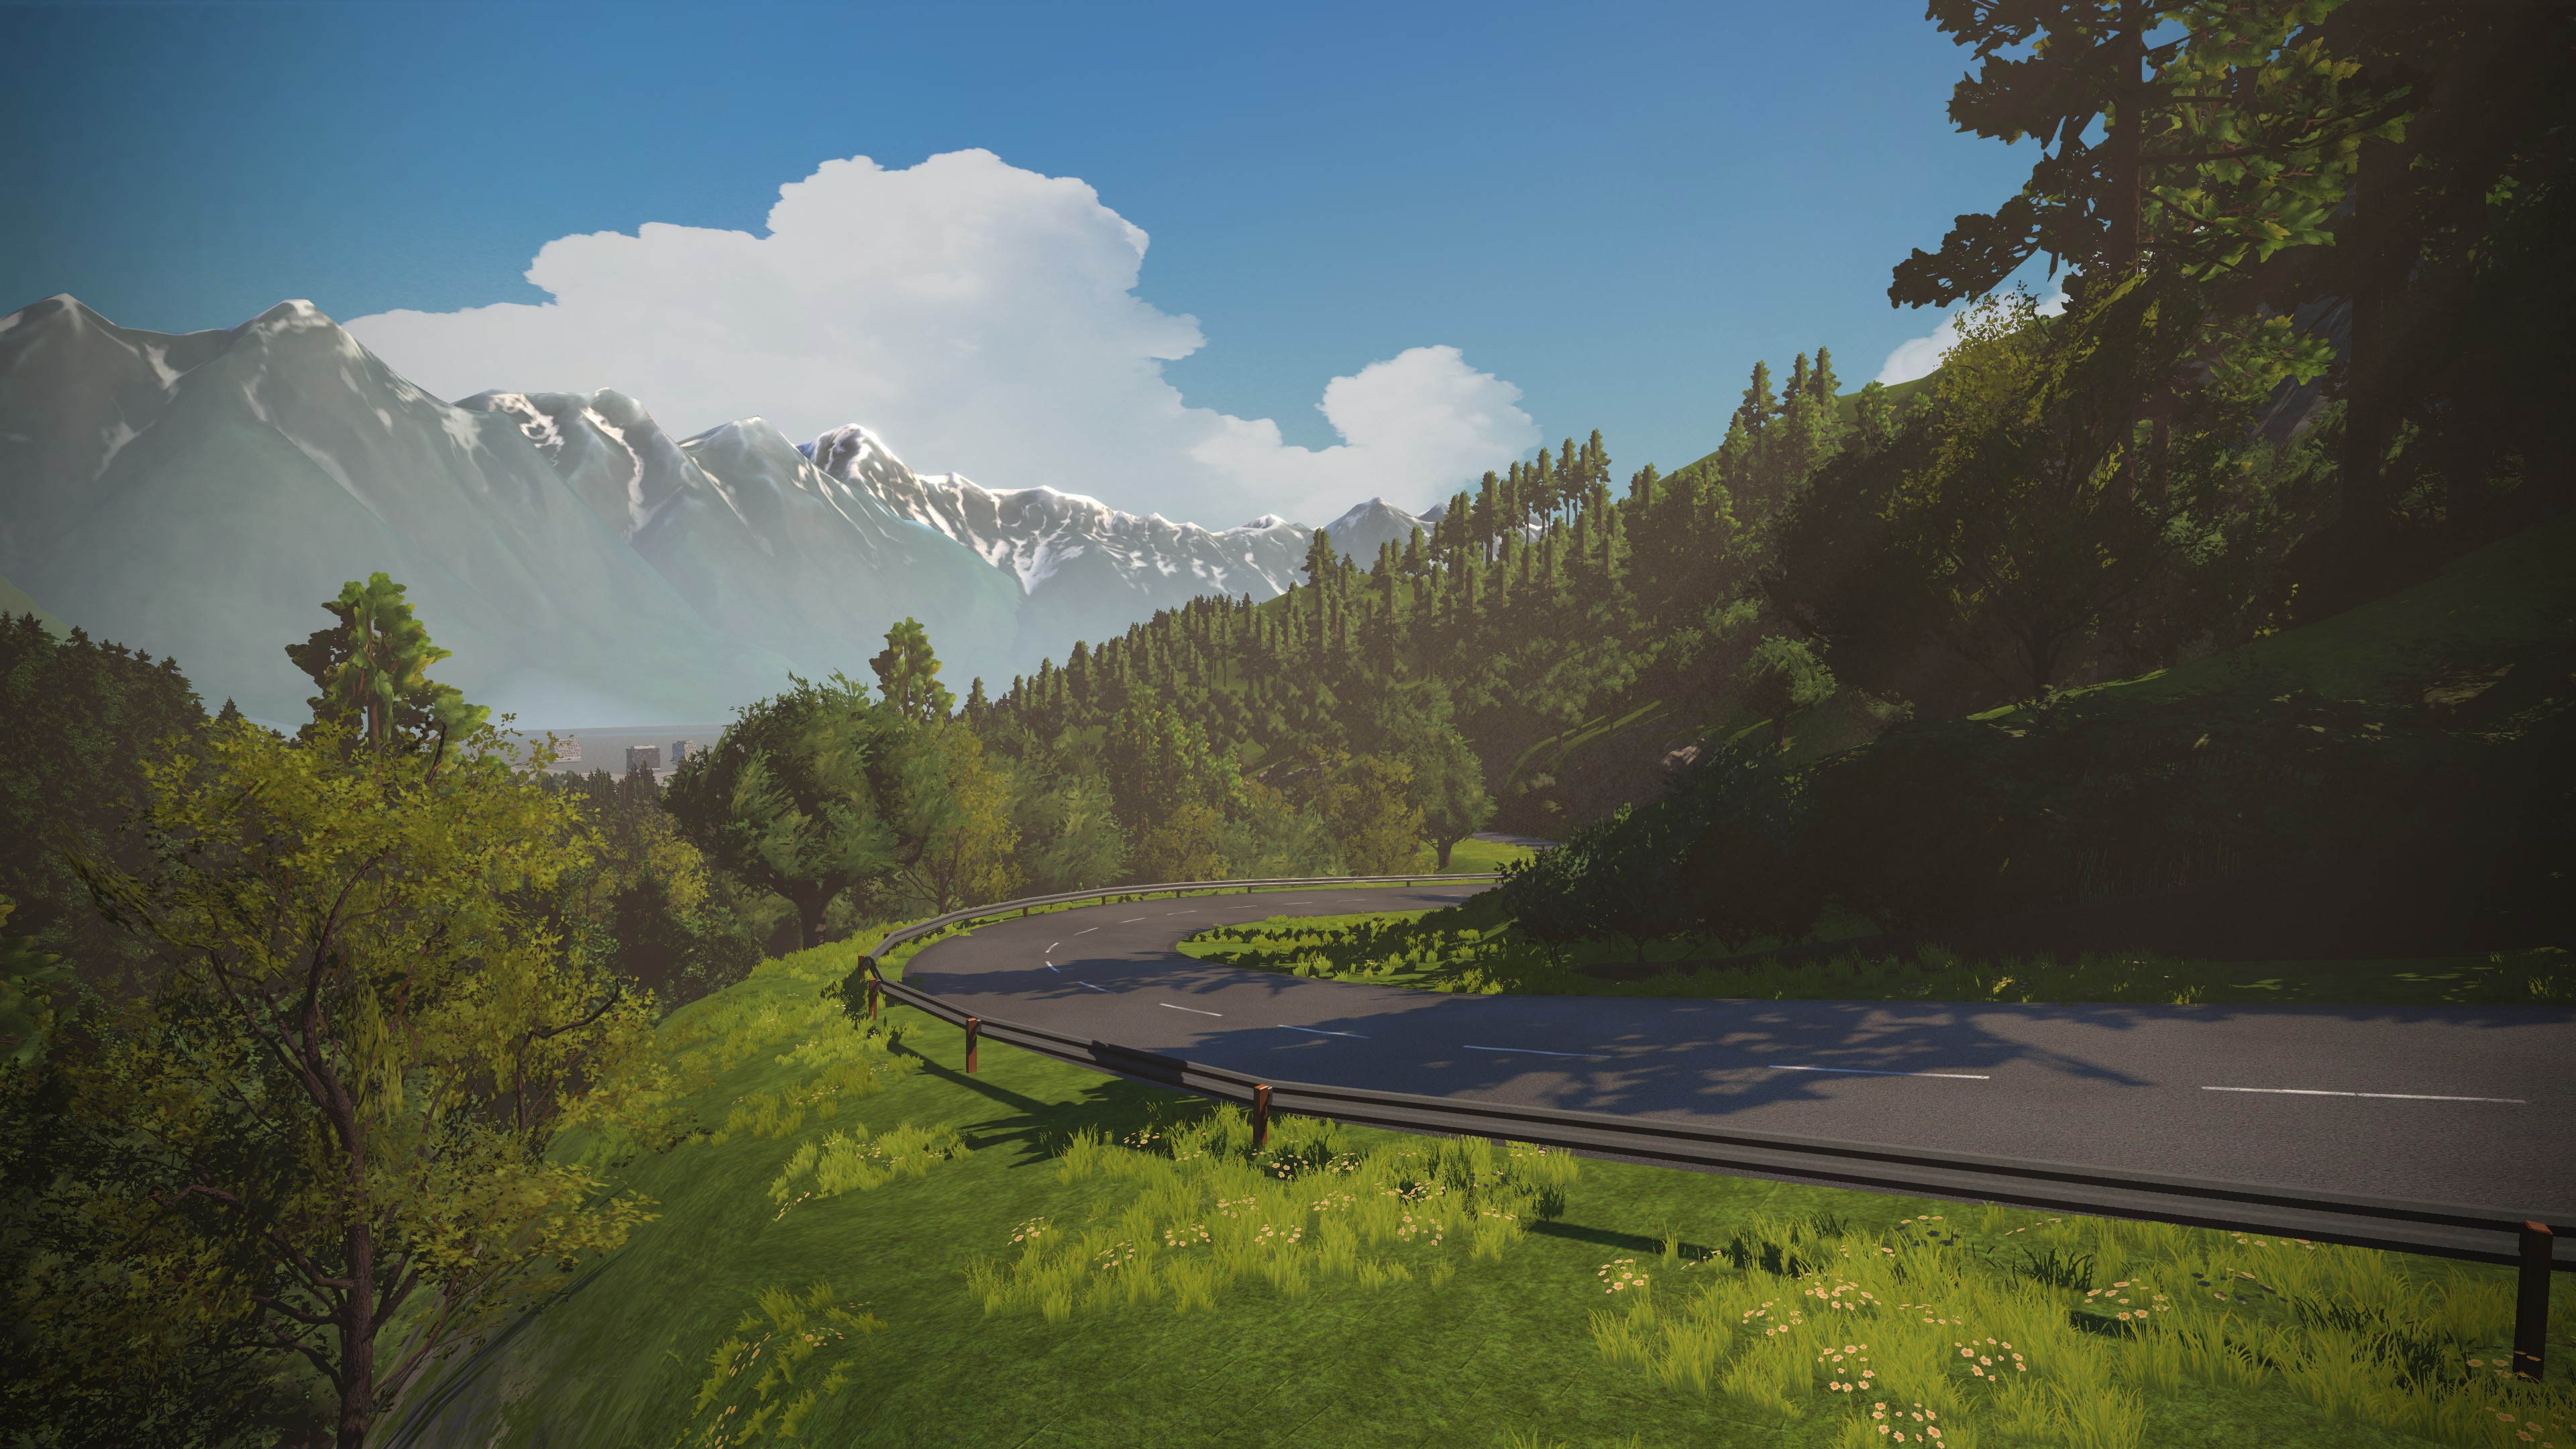 Zwift UCI World Championships Innsbruck course released